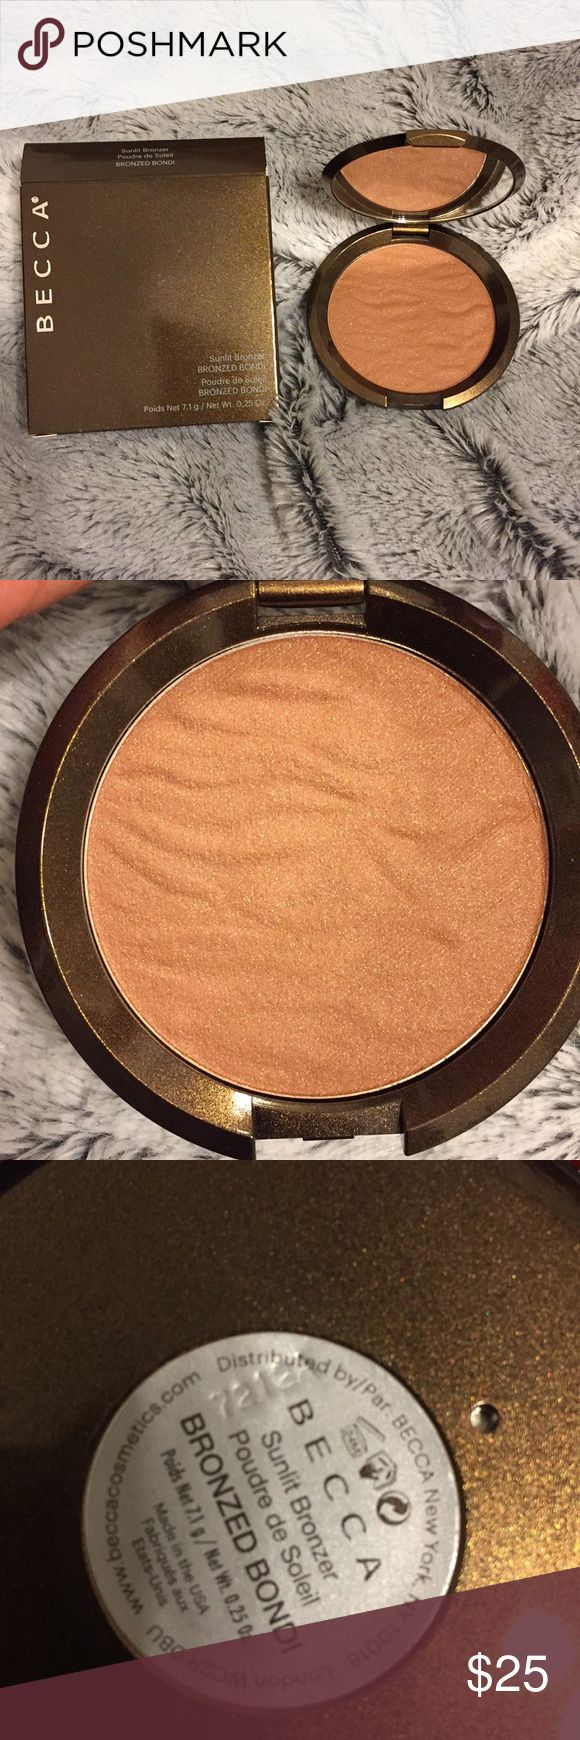 BECCA BRONZER Becca Sunlit Bronzer in BRONZED BONDI Brand new, never swatched.  Batch numbers provided for authenticity. BECCA Makeup Bronzer